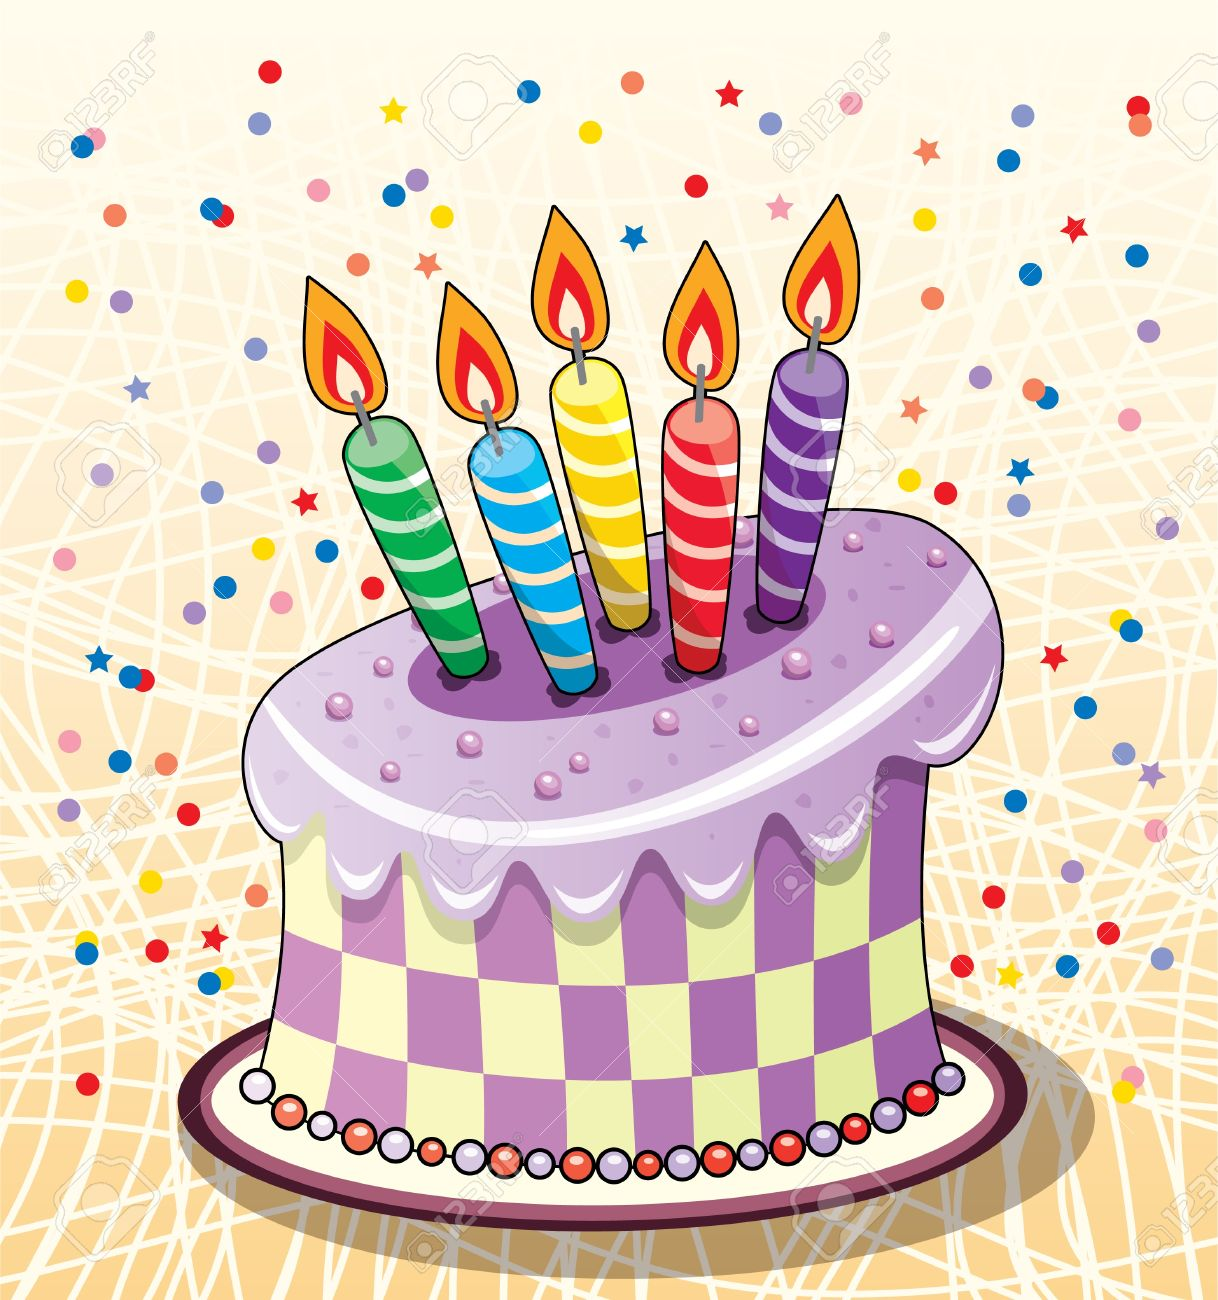 Birthday Cake With Candles And Confetti Royalty Free Cliparts